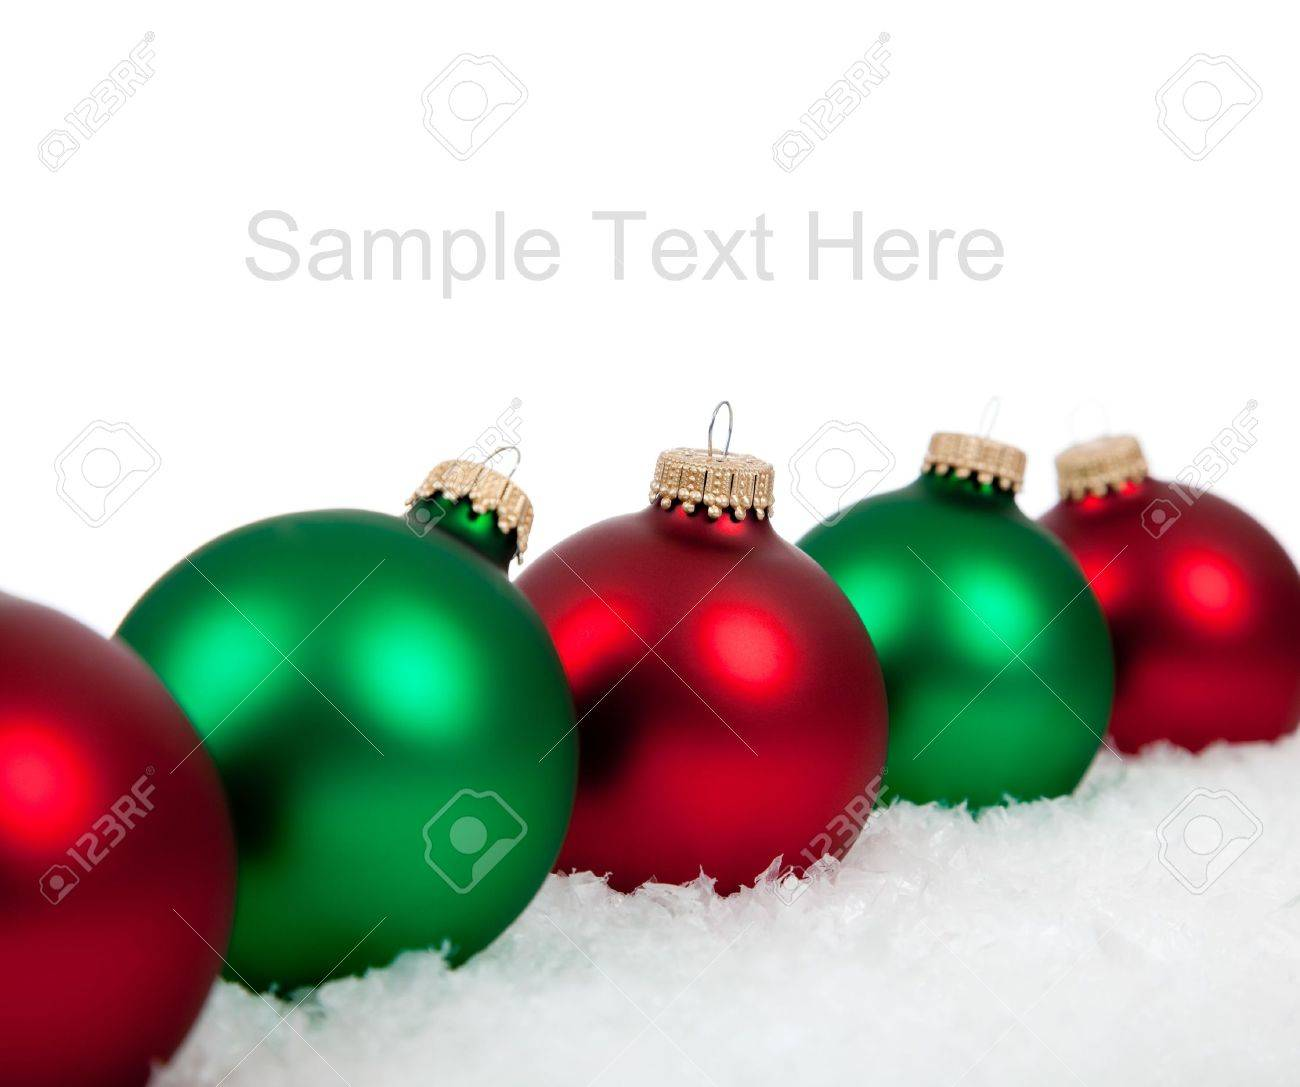 Red green and white christmas ornaments - Green And Red Christmas Ornaments Baubles On A White Background With Copy Space Stock Photo